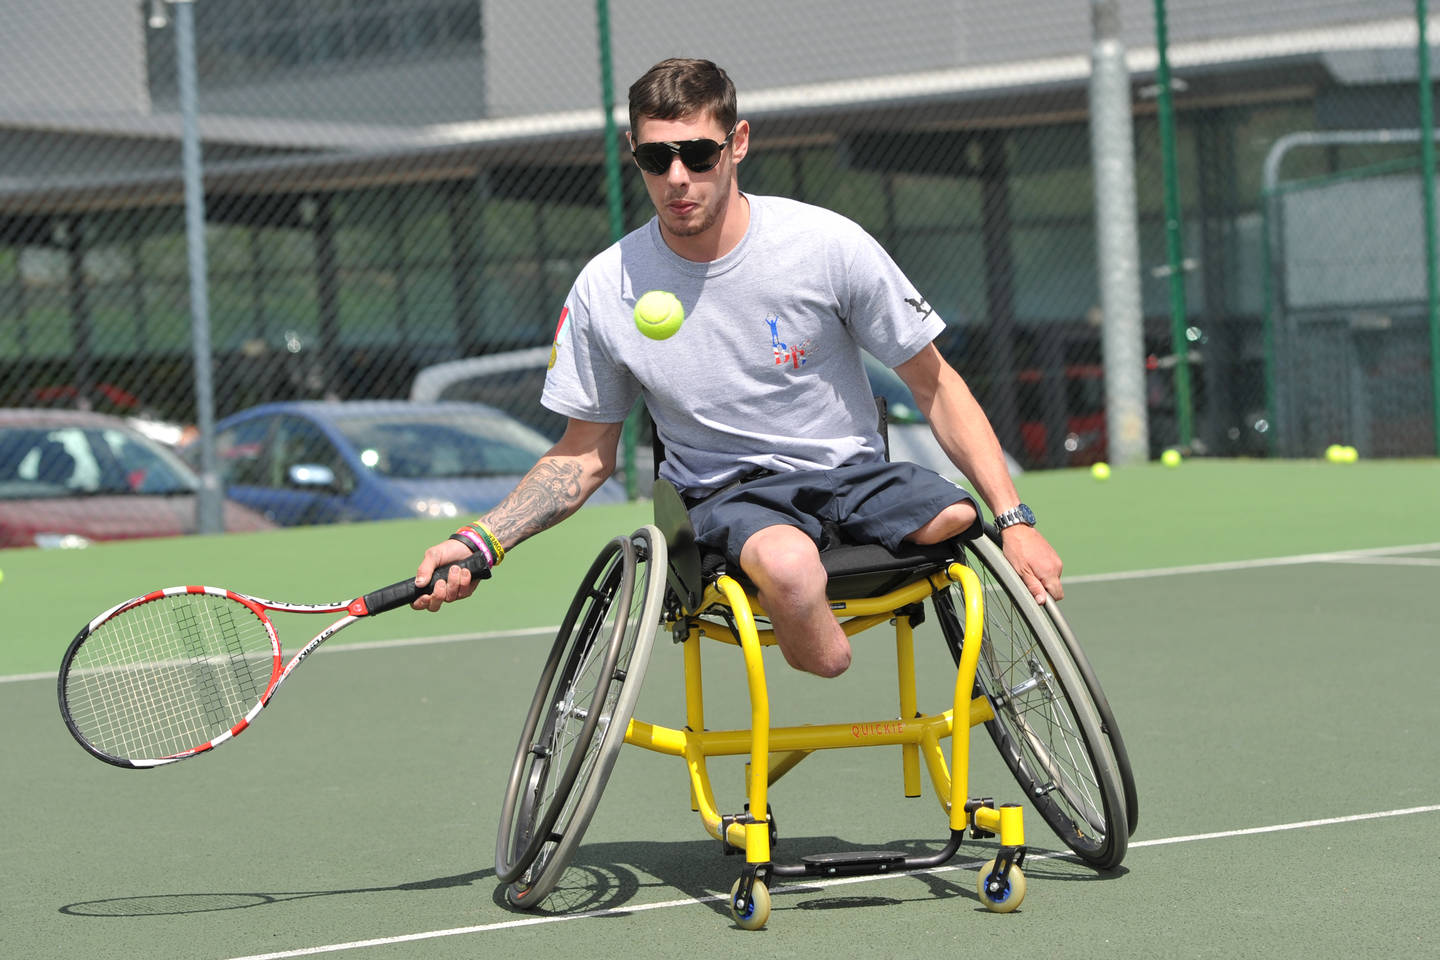 sports and amputees Prosthetics & athletics foundation and one of their services is that they provide equipment grants to lower-limb amputees that can be used to receive a sport foot.